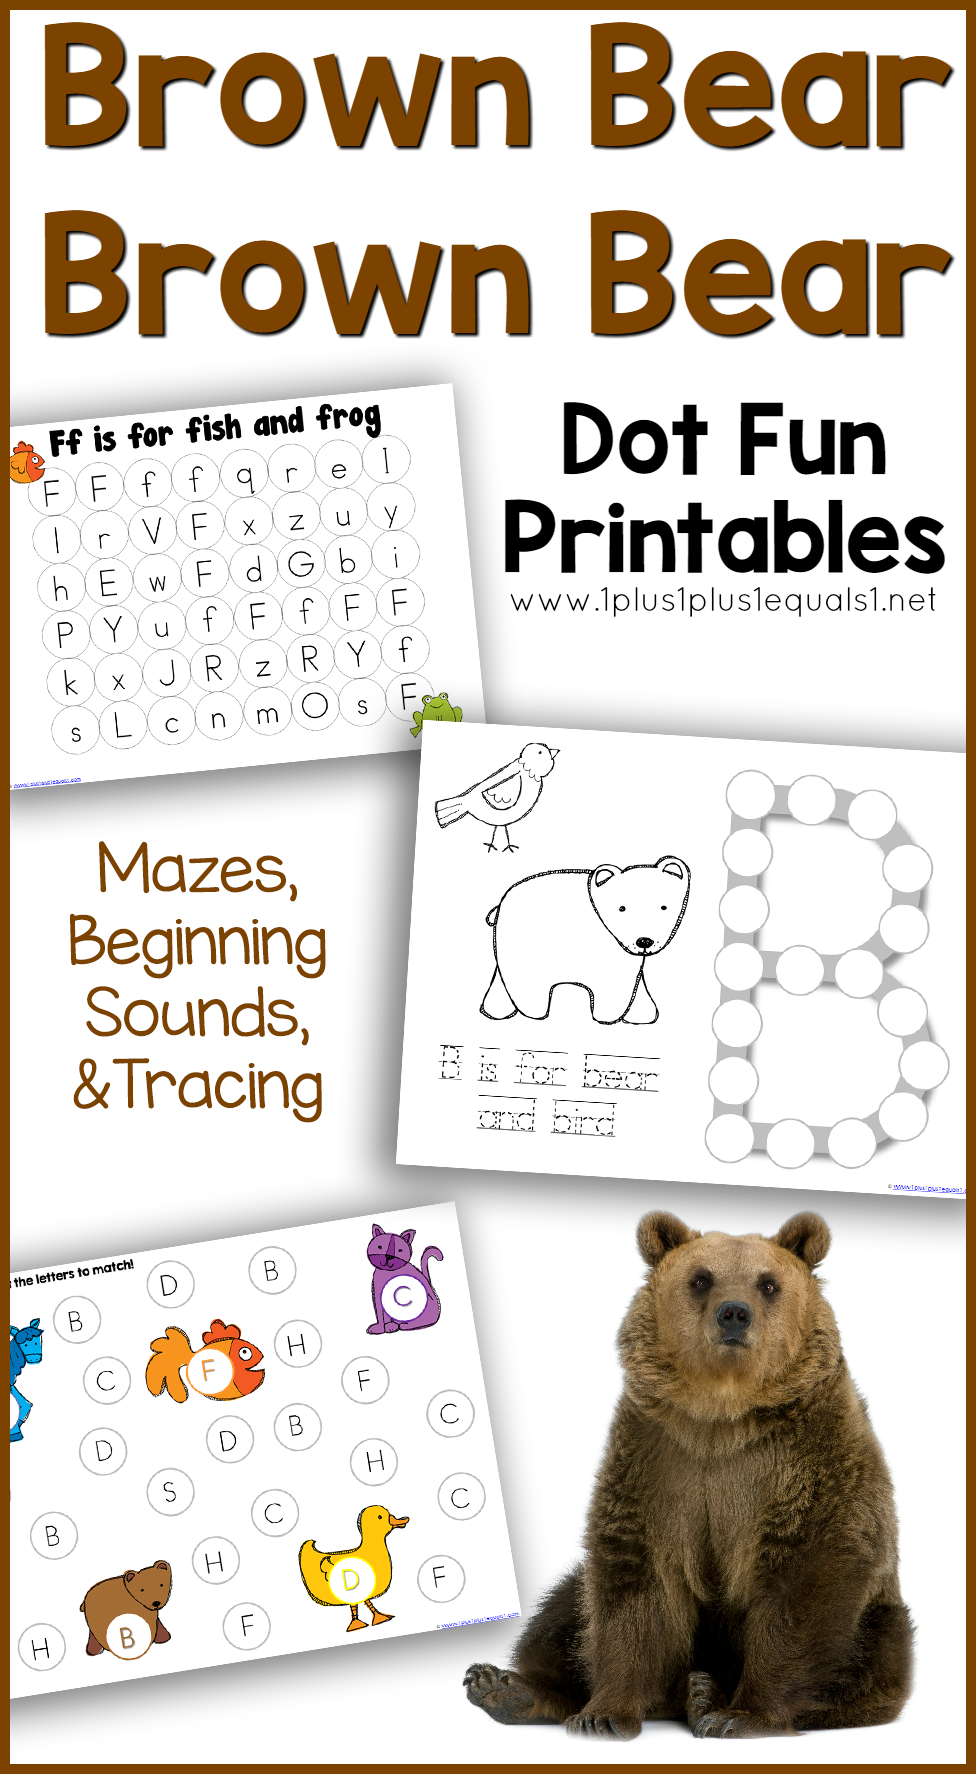 Brown Bear Dot Fun Printables